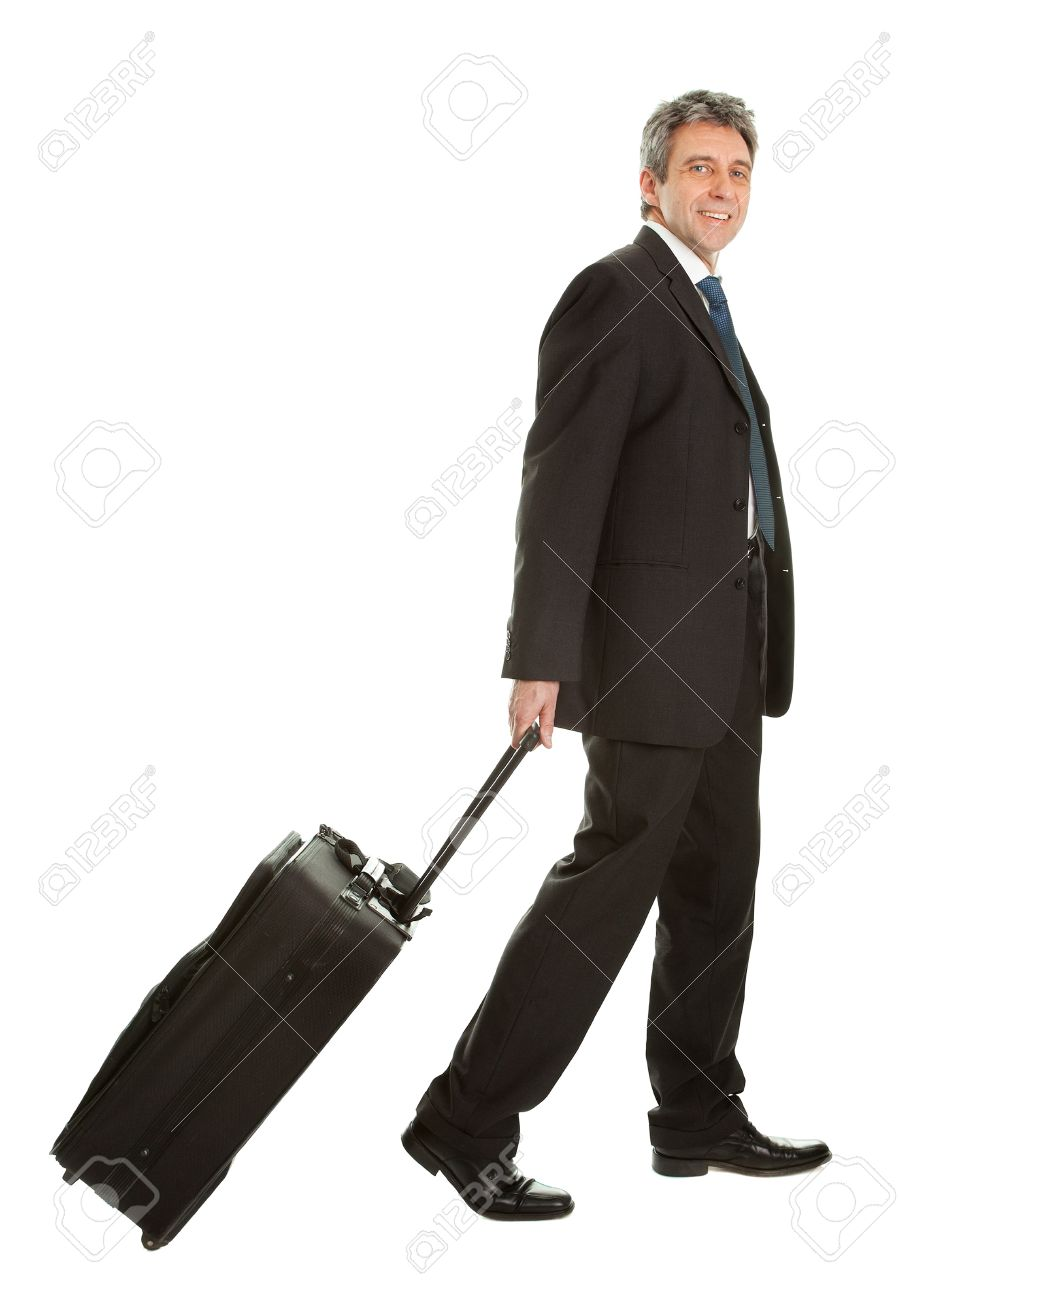 Senior Businessmen With Travel Bag Stock Photo, Picture And ...